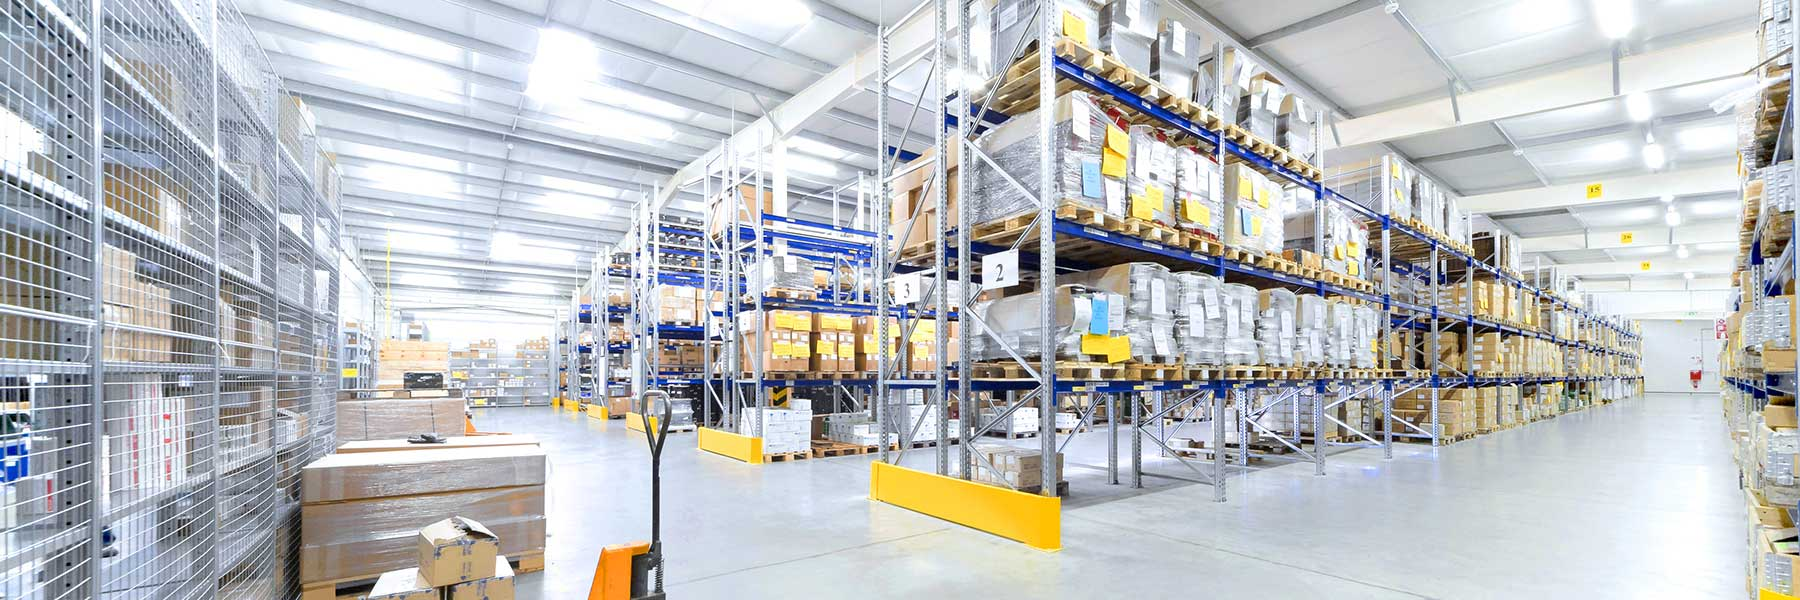 https://www.allstoragesystems.com.au/wp-content/uploads/2016/12/warehouse-solutions.jpg